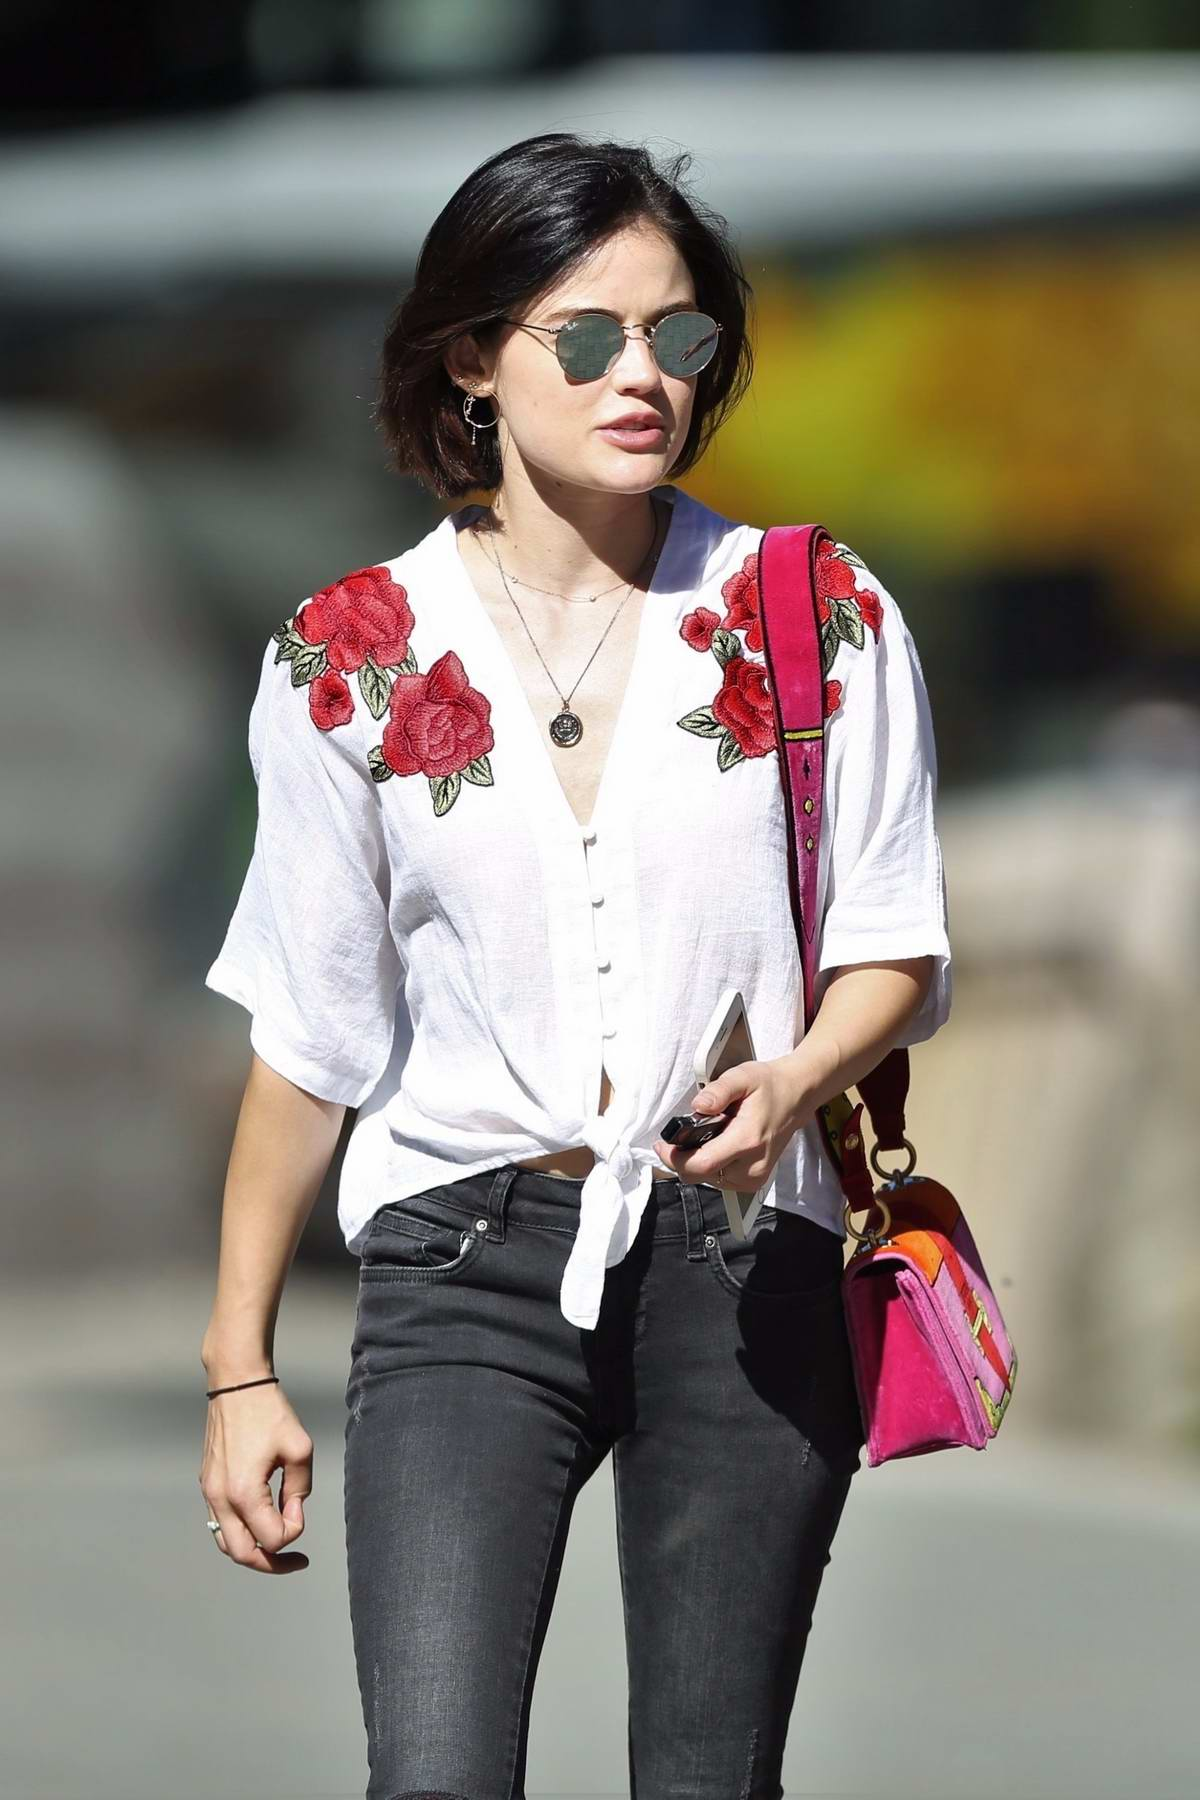 Lucy Hale taking a walk in Vancouver, Canada